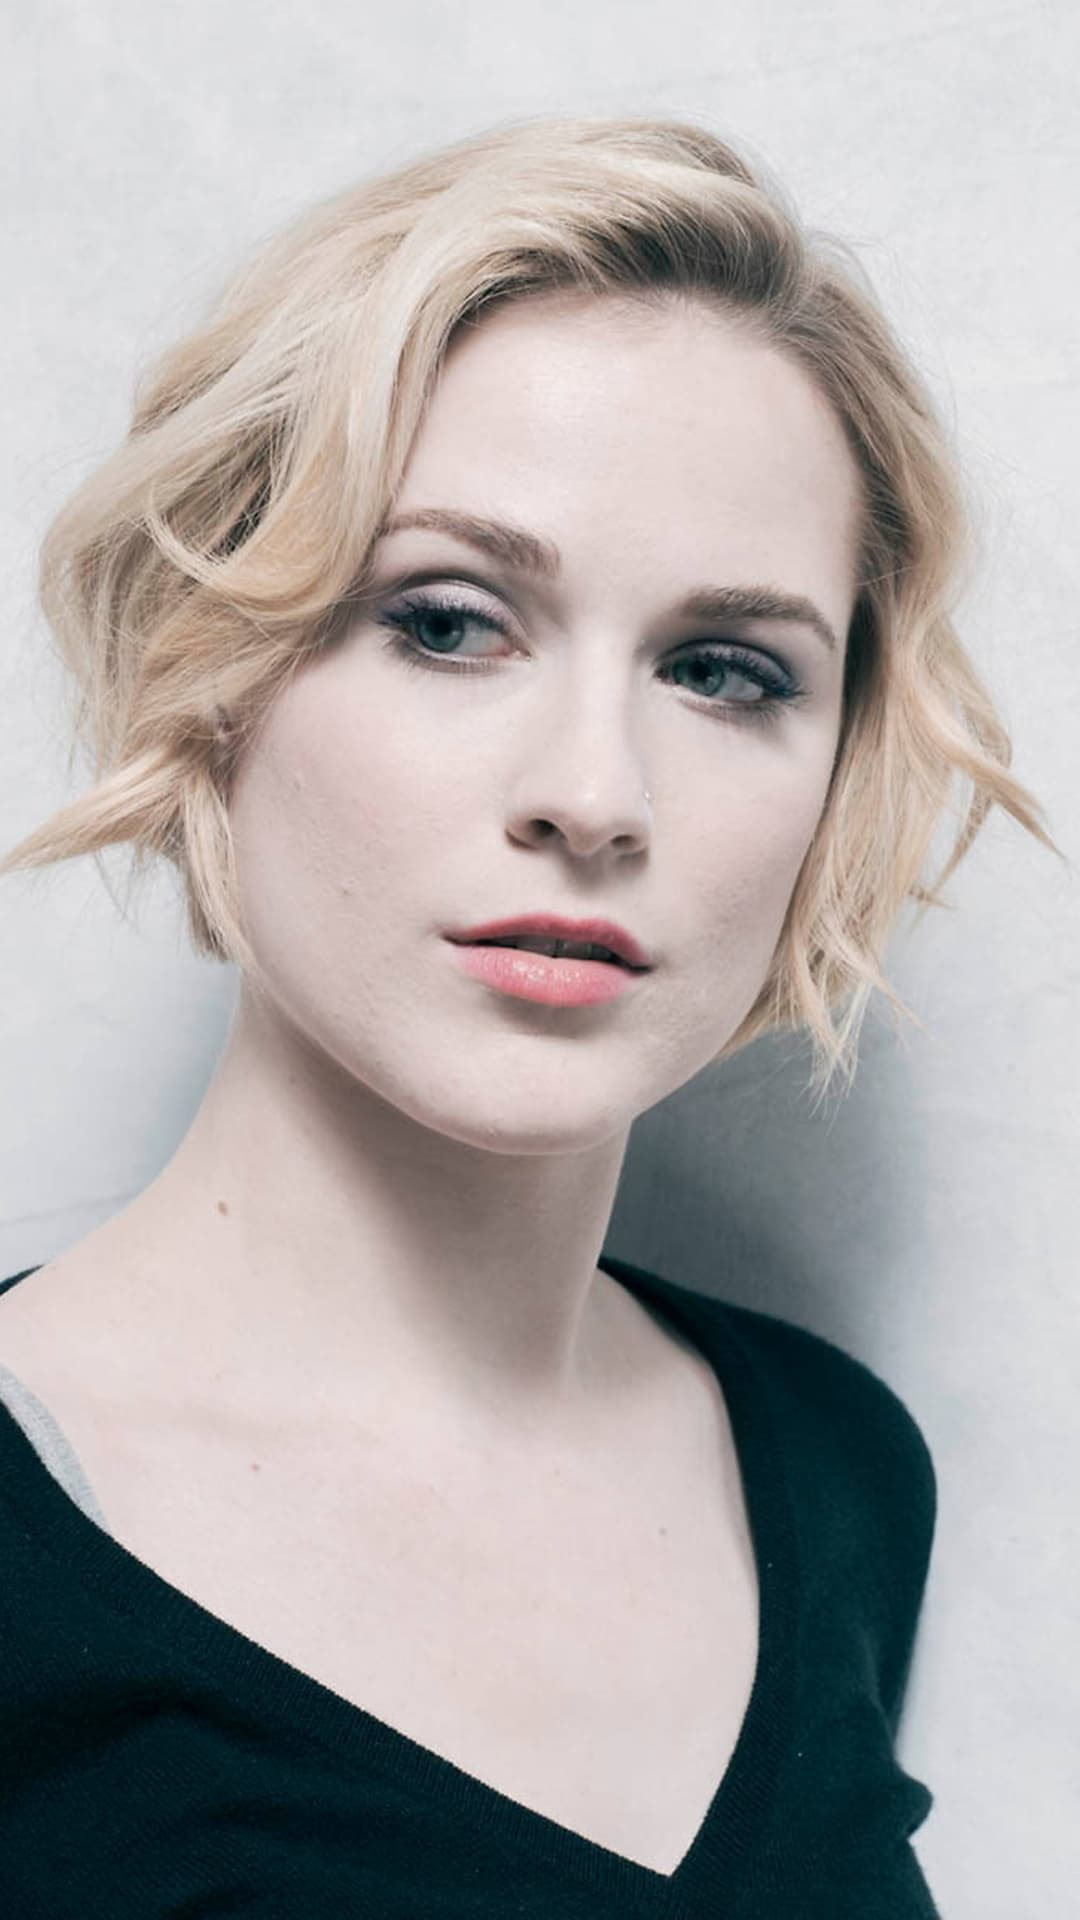 High Quality Car Pictures And Car Wallpapers Evan Rachel Wood Wallpapers Hd High Quality Resolution